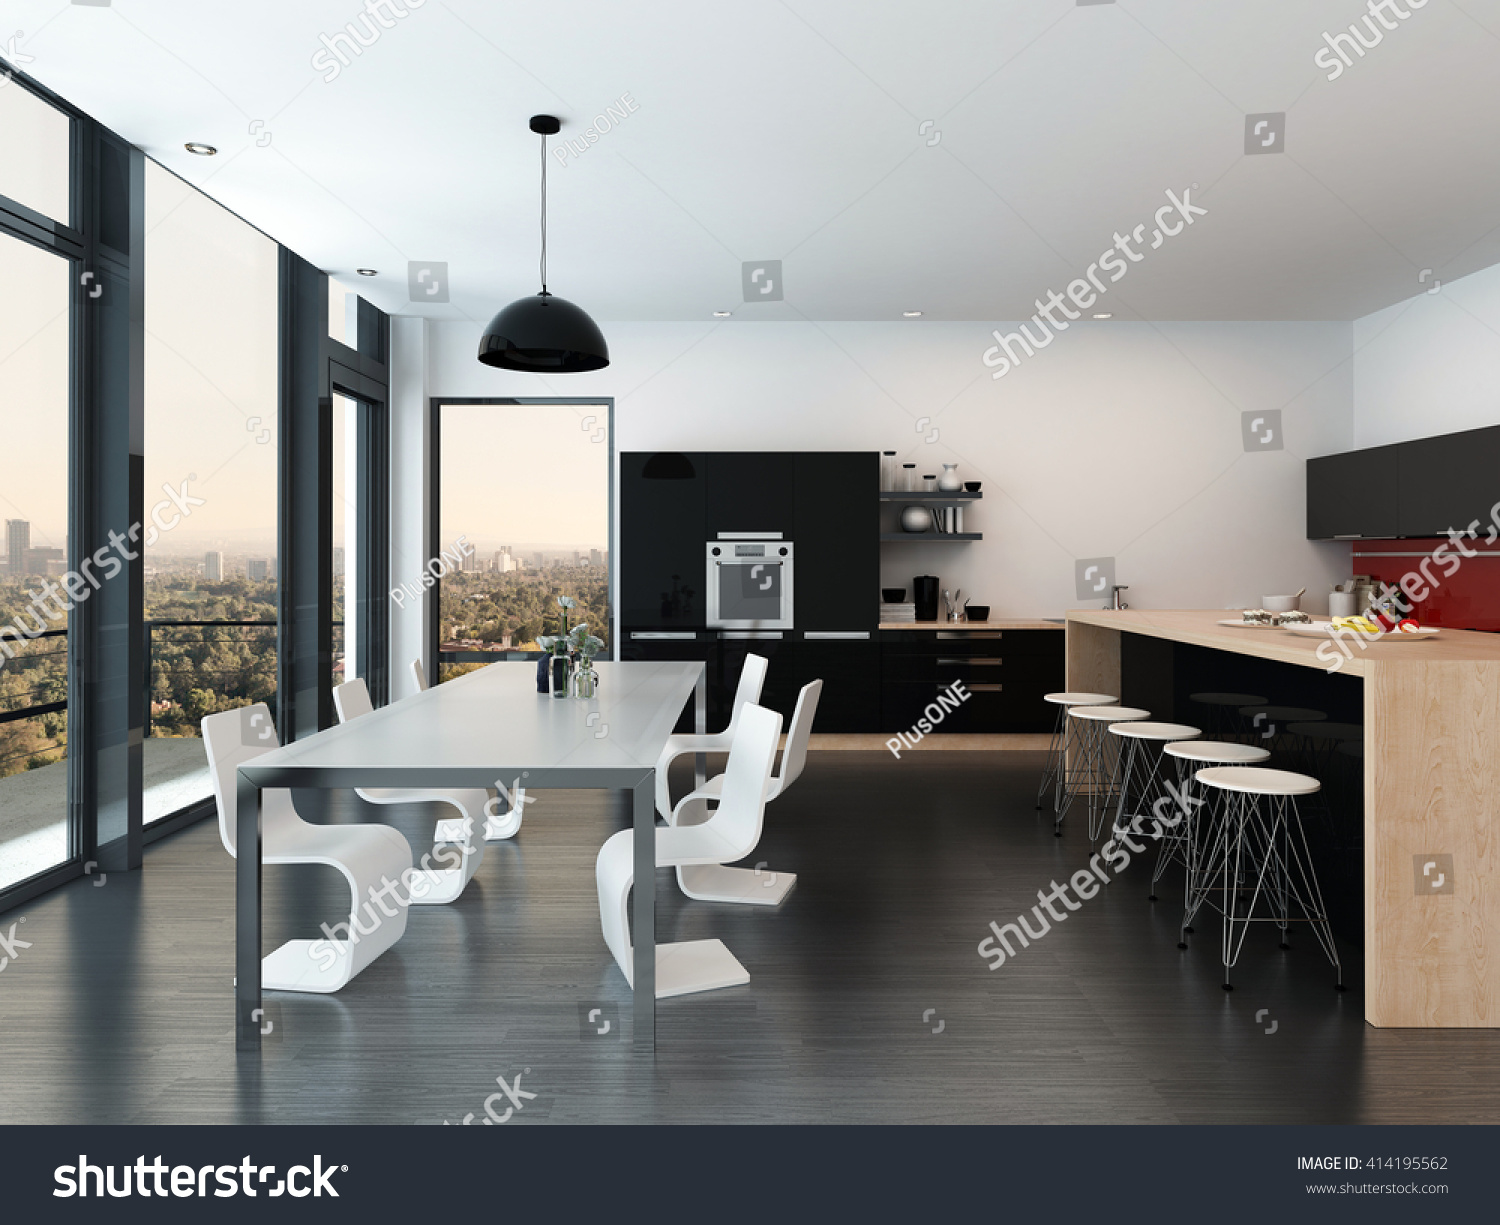 Modern Open Plan Kitchen And Dining Room Interior Decor With A Molded Suite